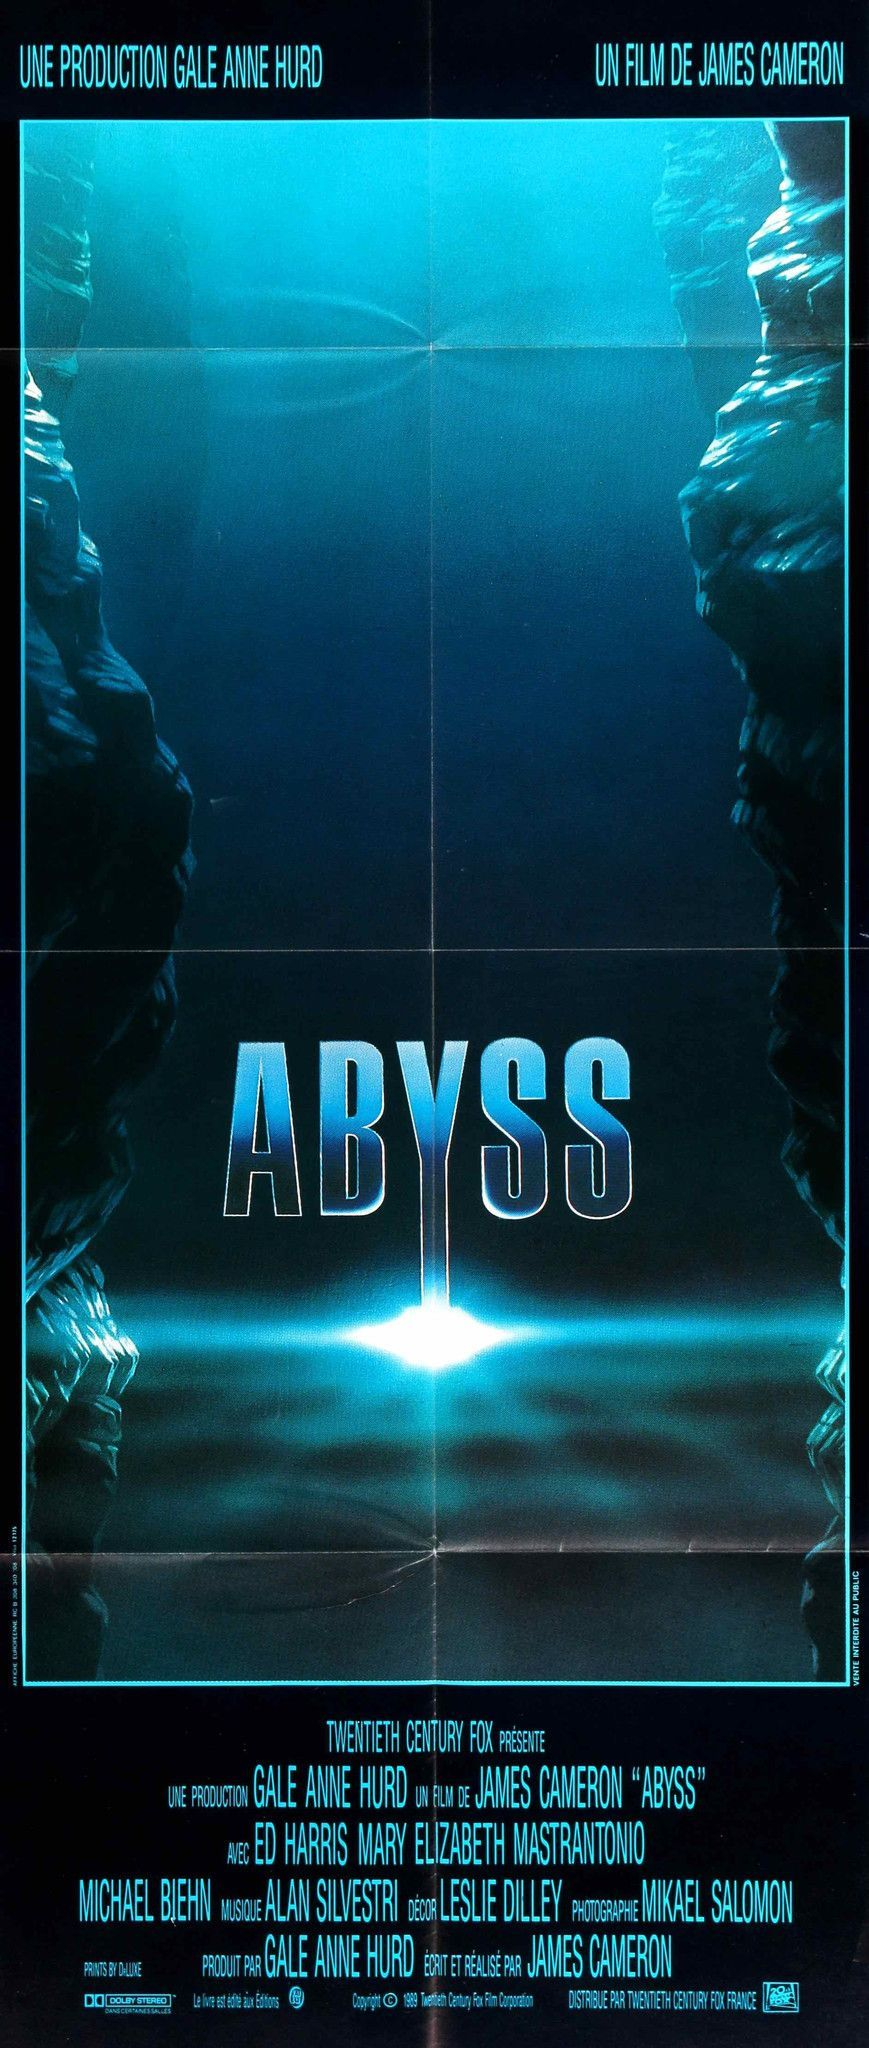 Abyss 1989 Movie Posters French Movie Posters Movie Posters Vintage